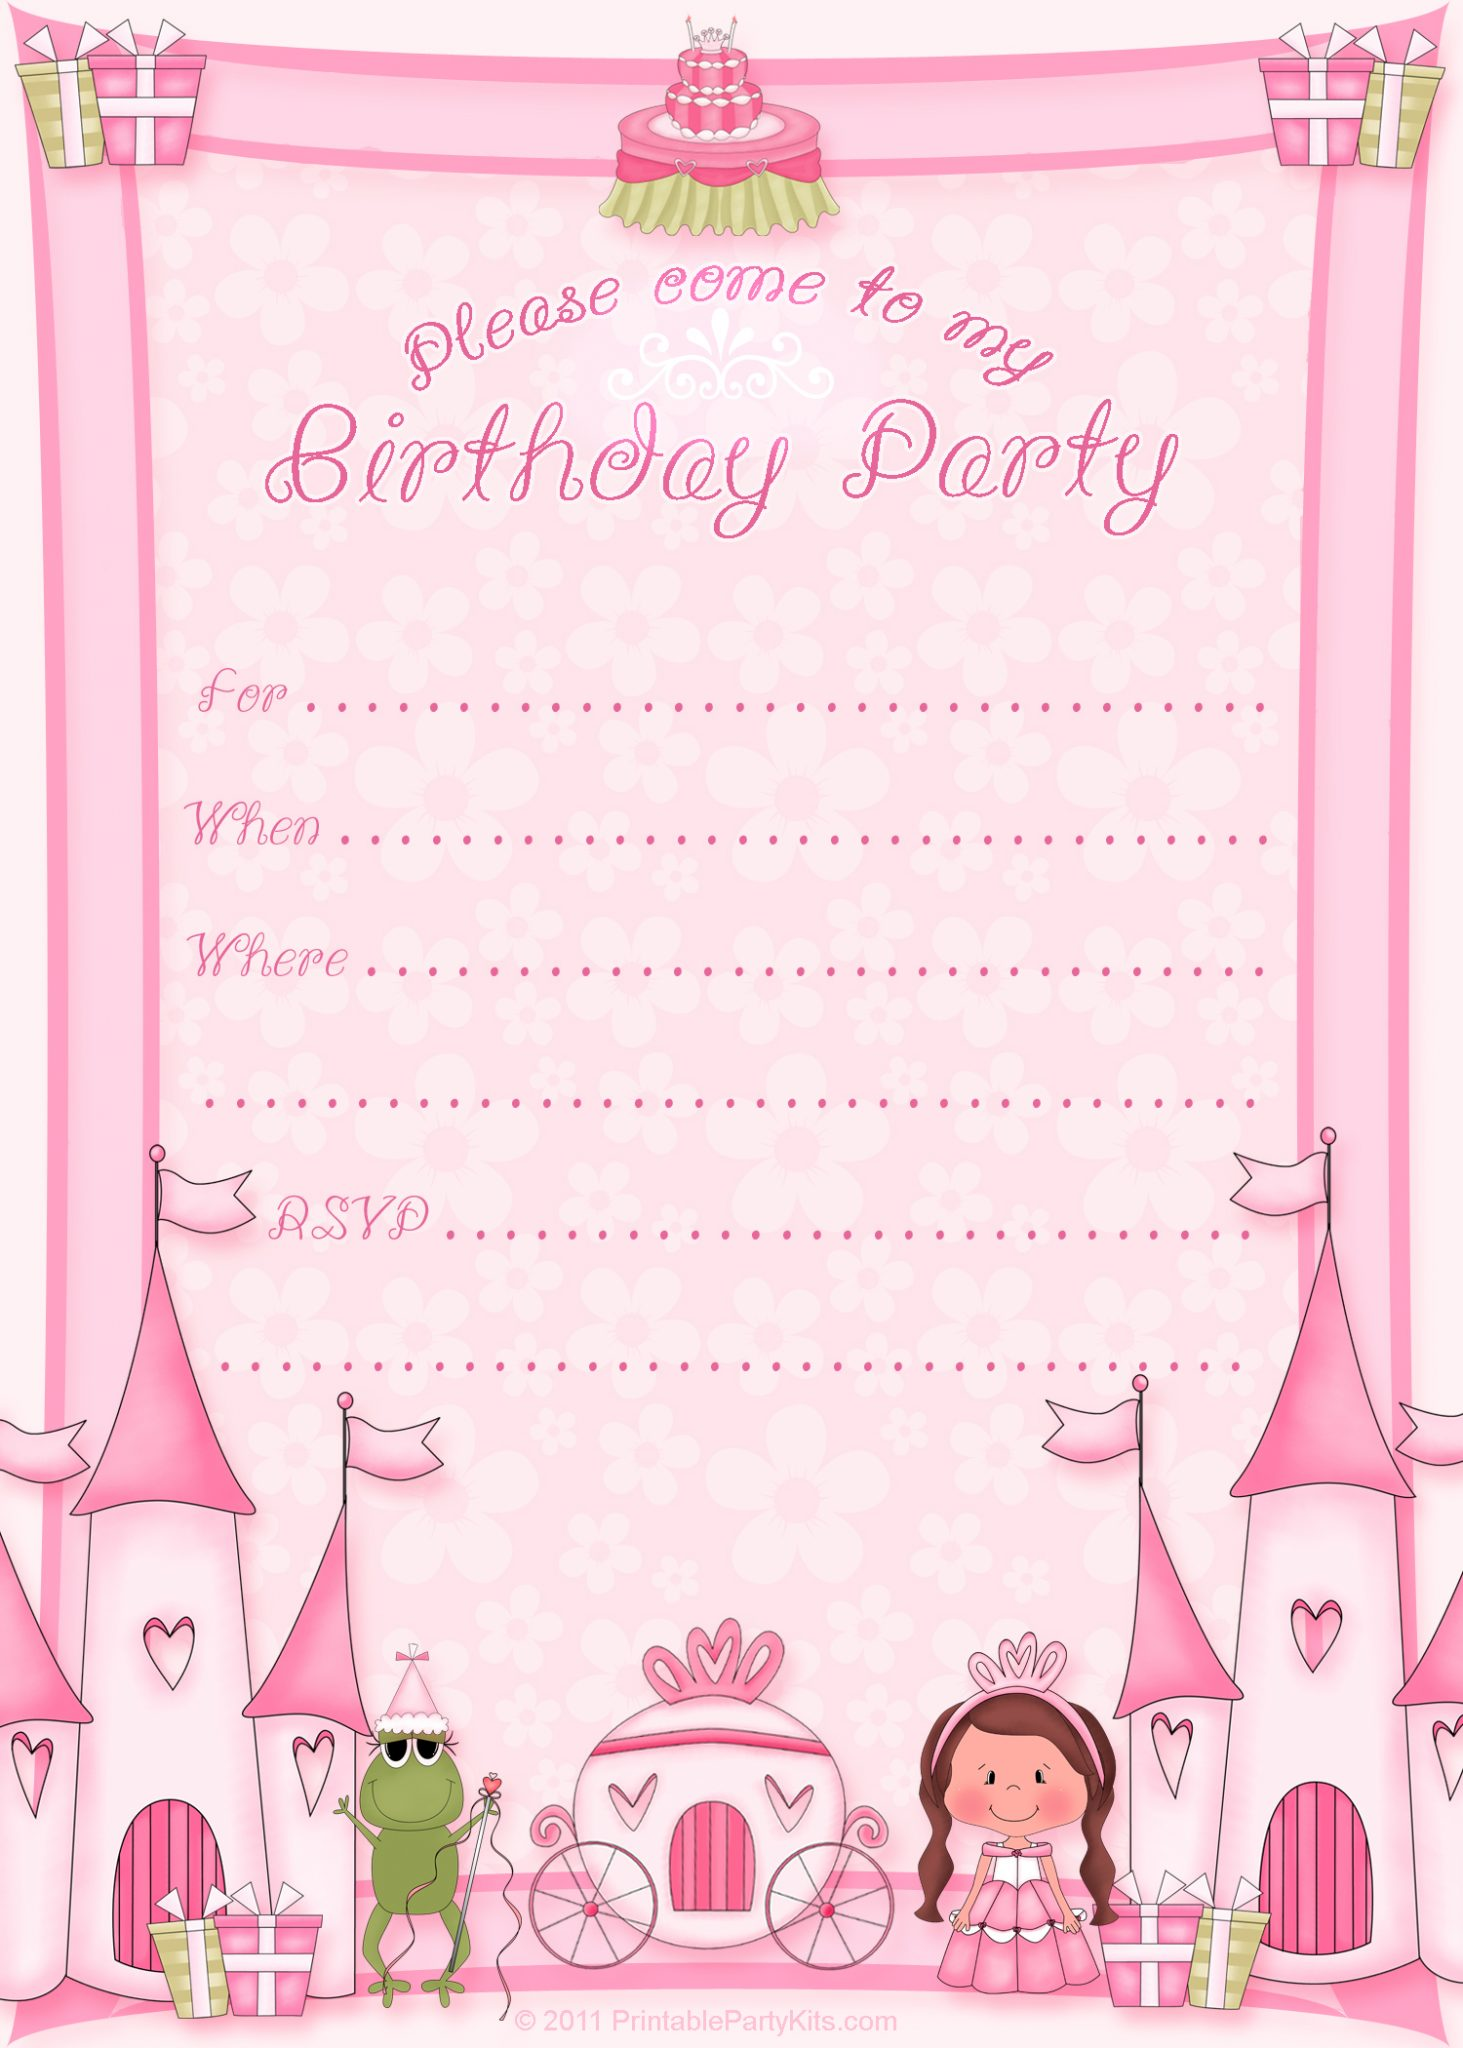 50 Free Birthday Invitation Templates You Will Love These – Birthday Template Invitations